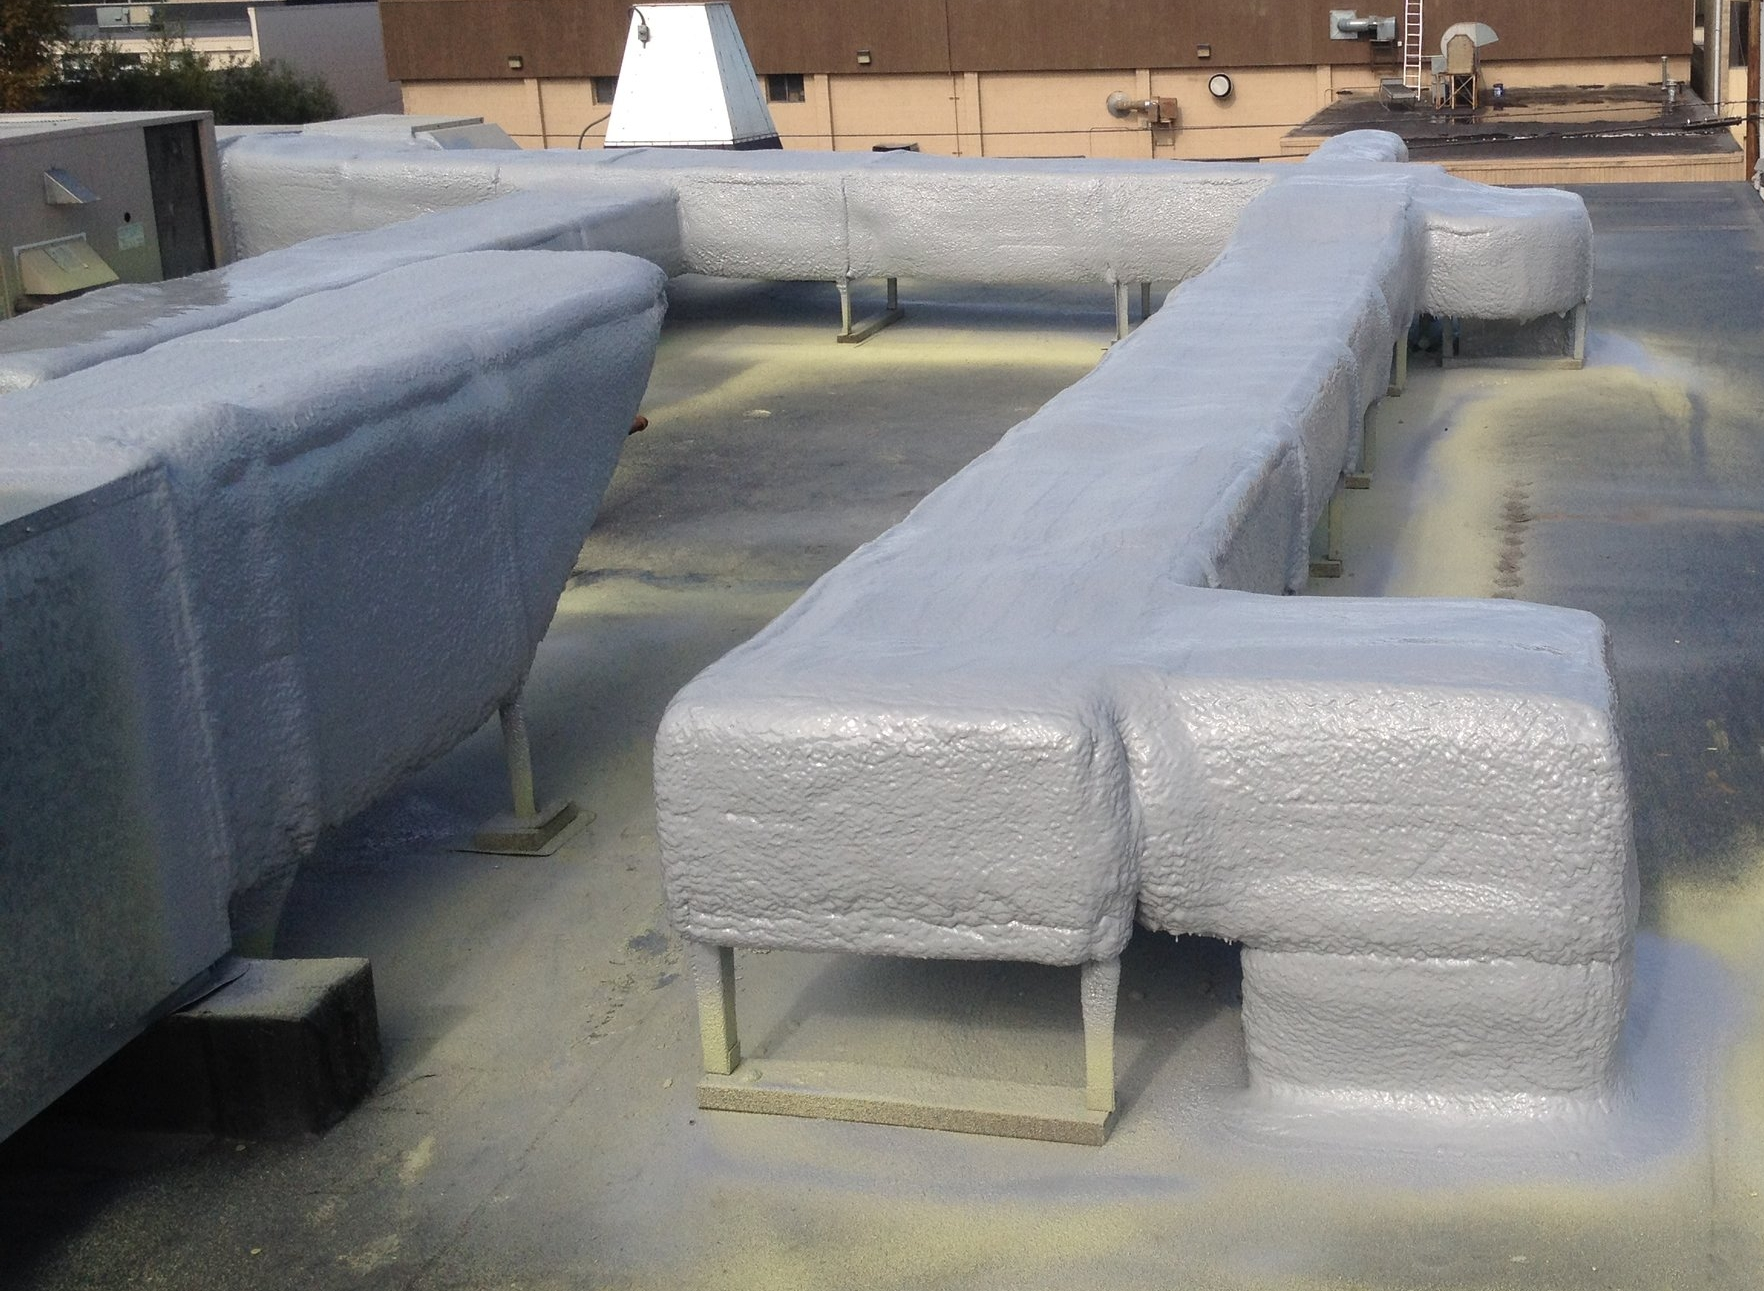 Urethane Alaska's quality of rooftop ductwork after applying urethane and Polyshield.